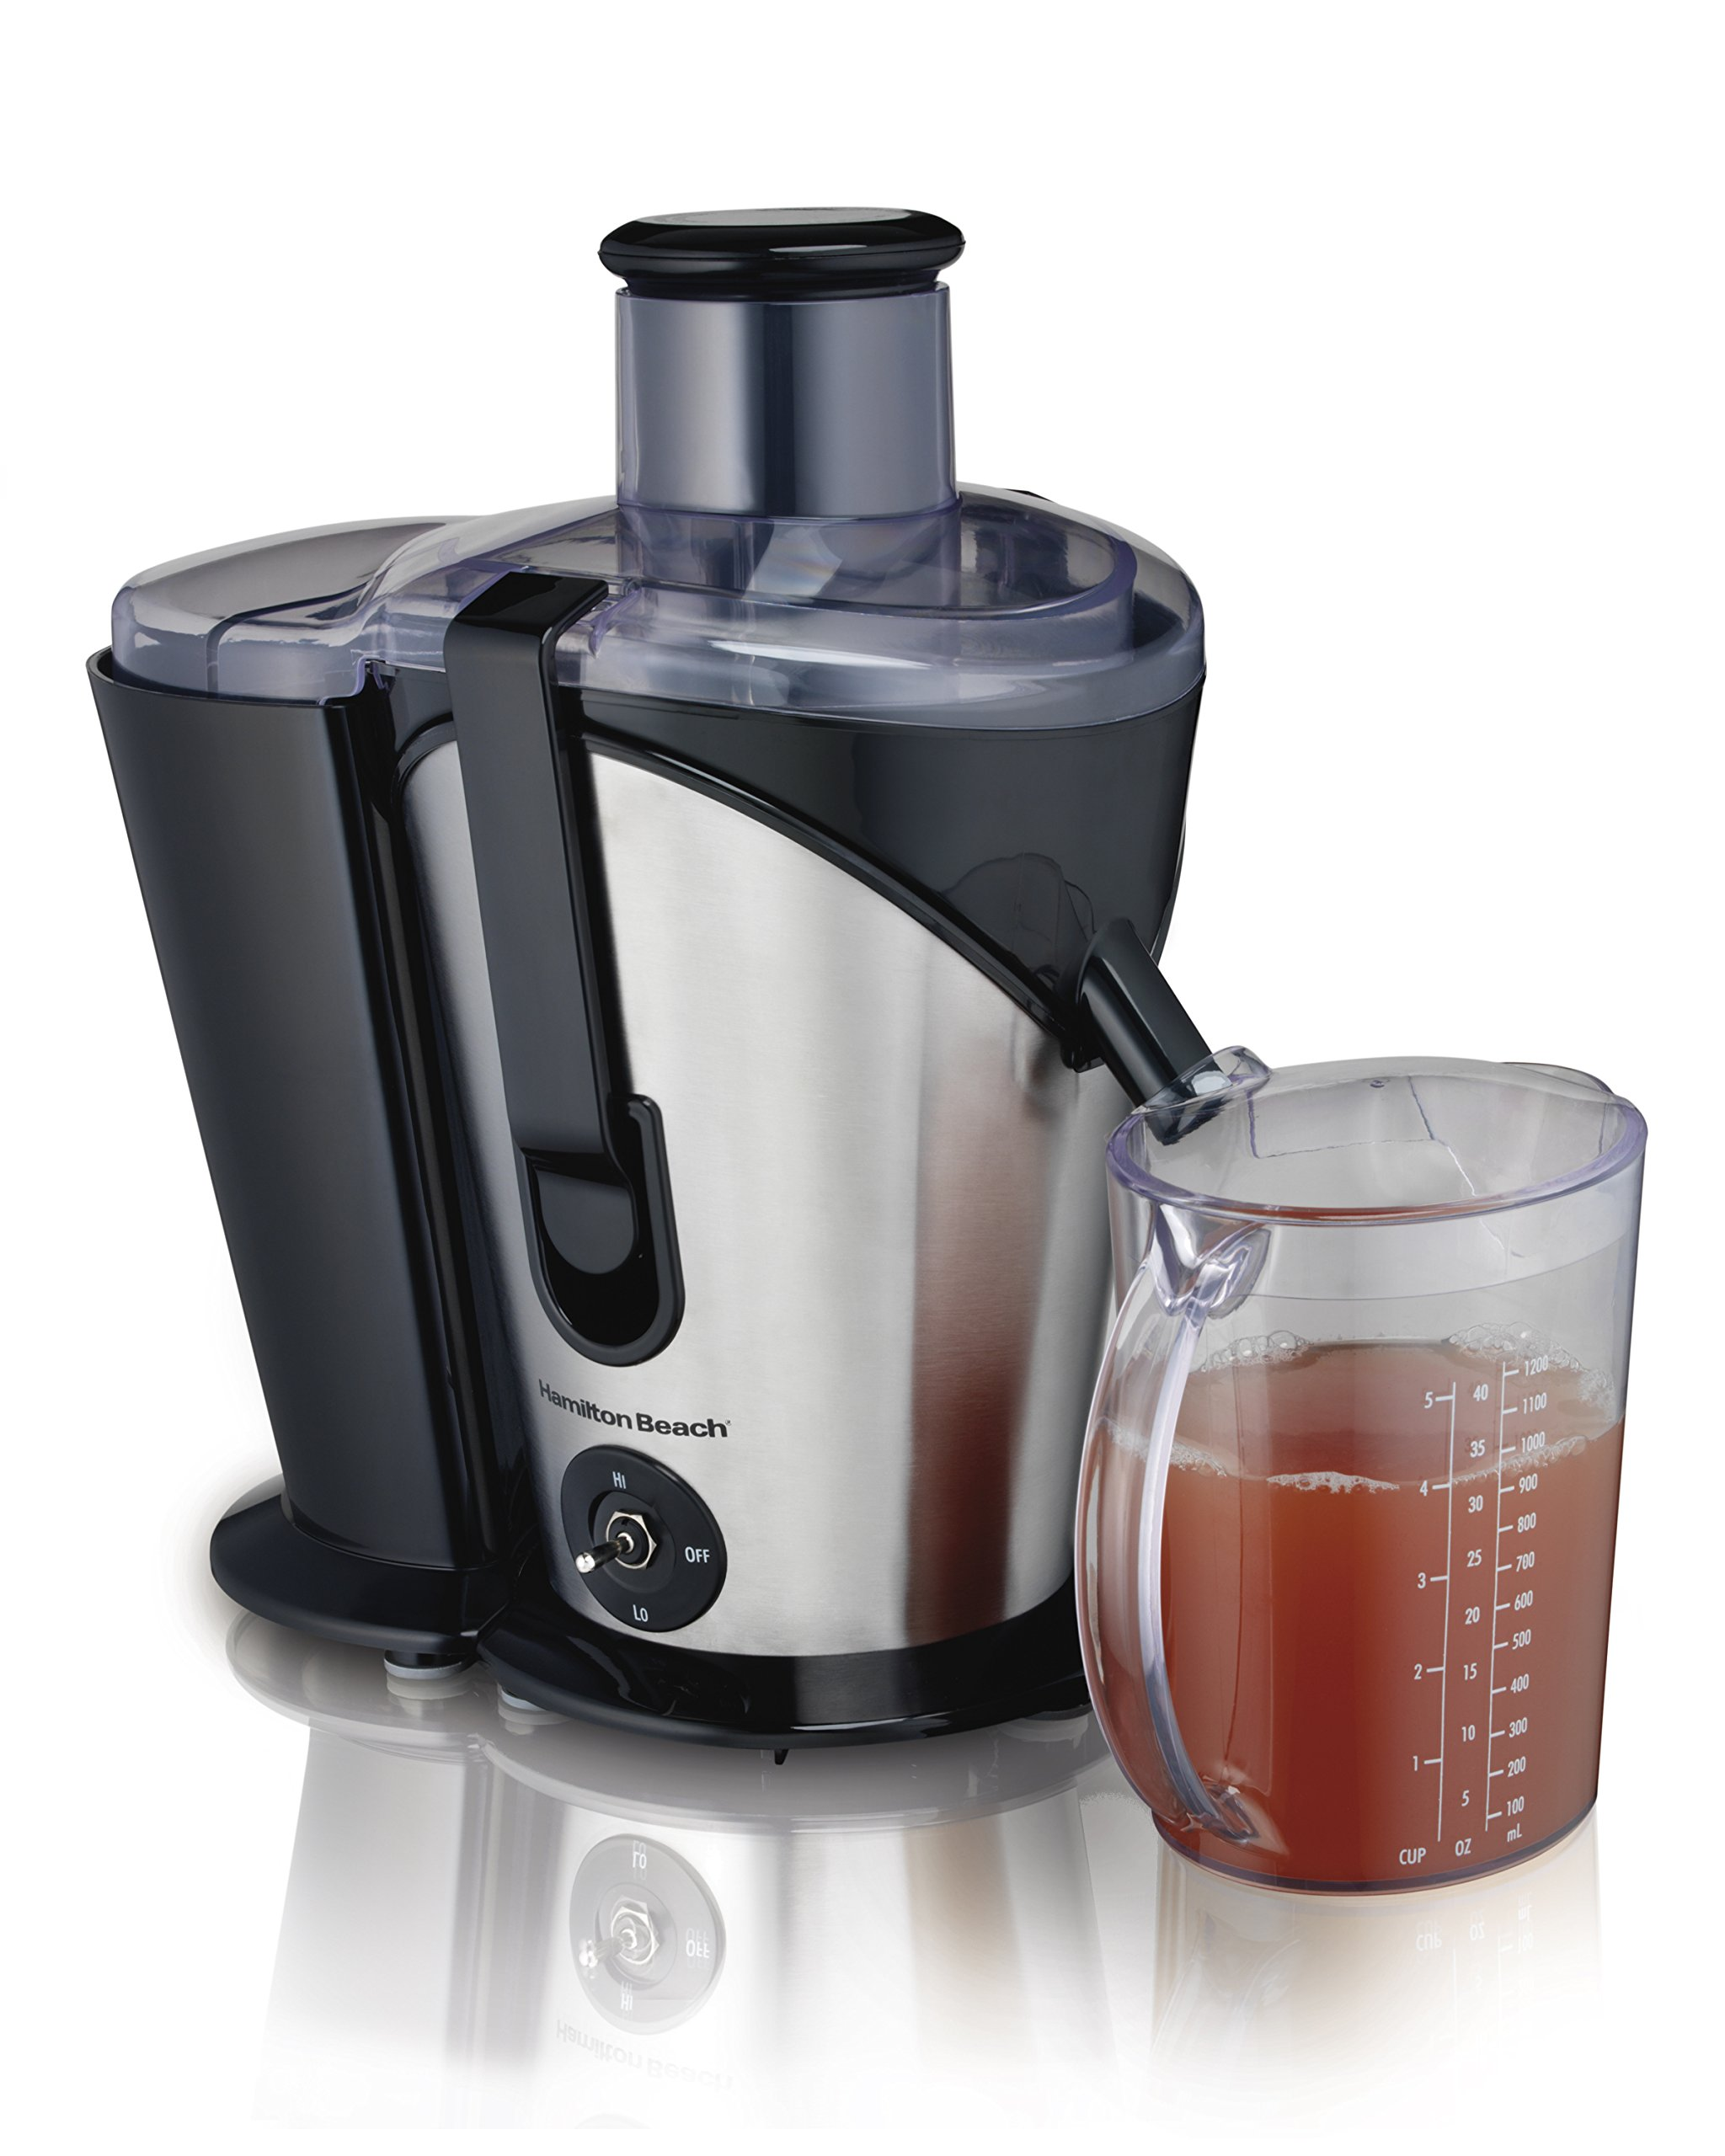 Hamilton Beach (67750) Juicer, Electric, 800 Watts, Easy To Clean, Black